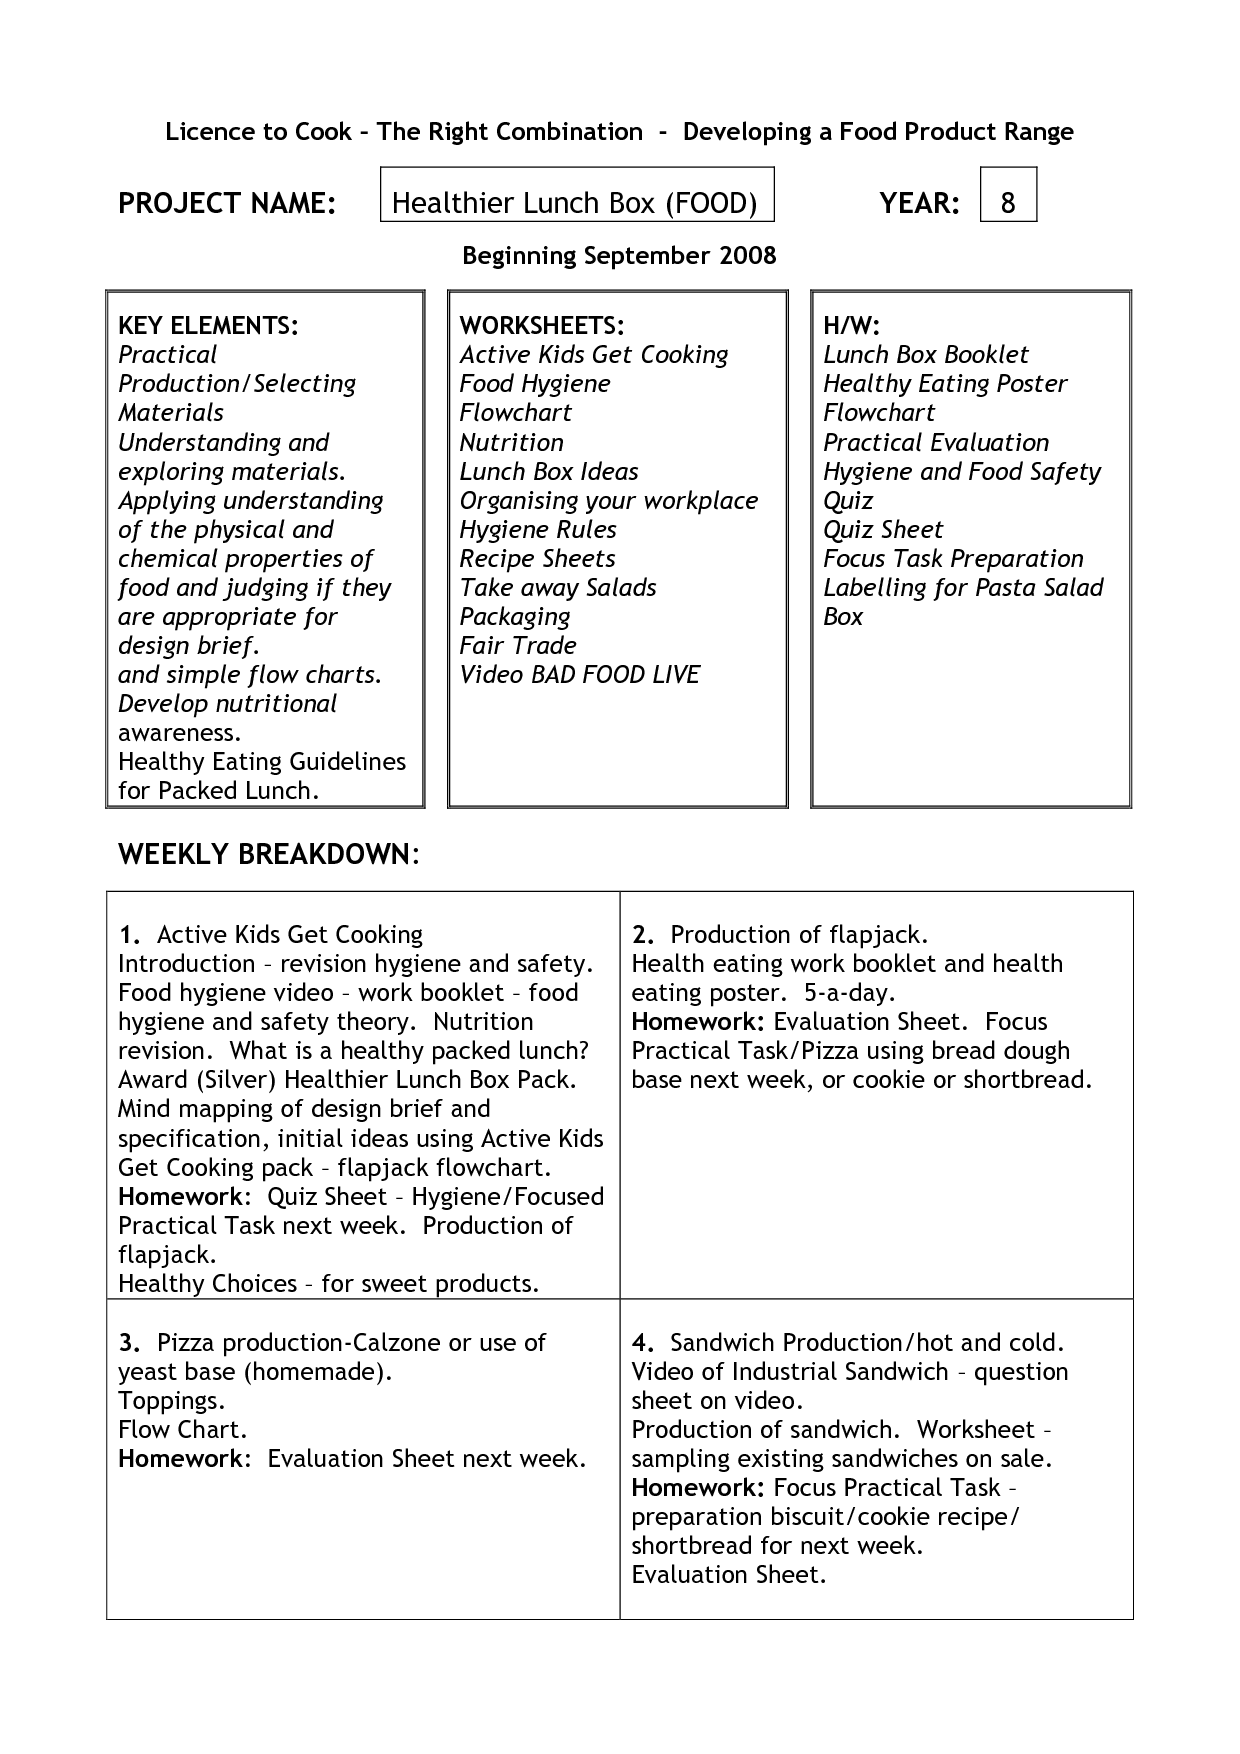 Sanitation Worker Worksheet